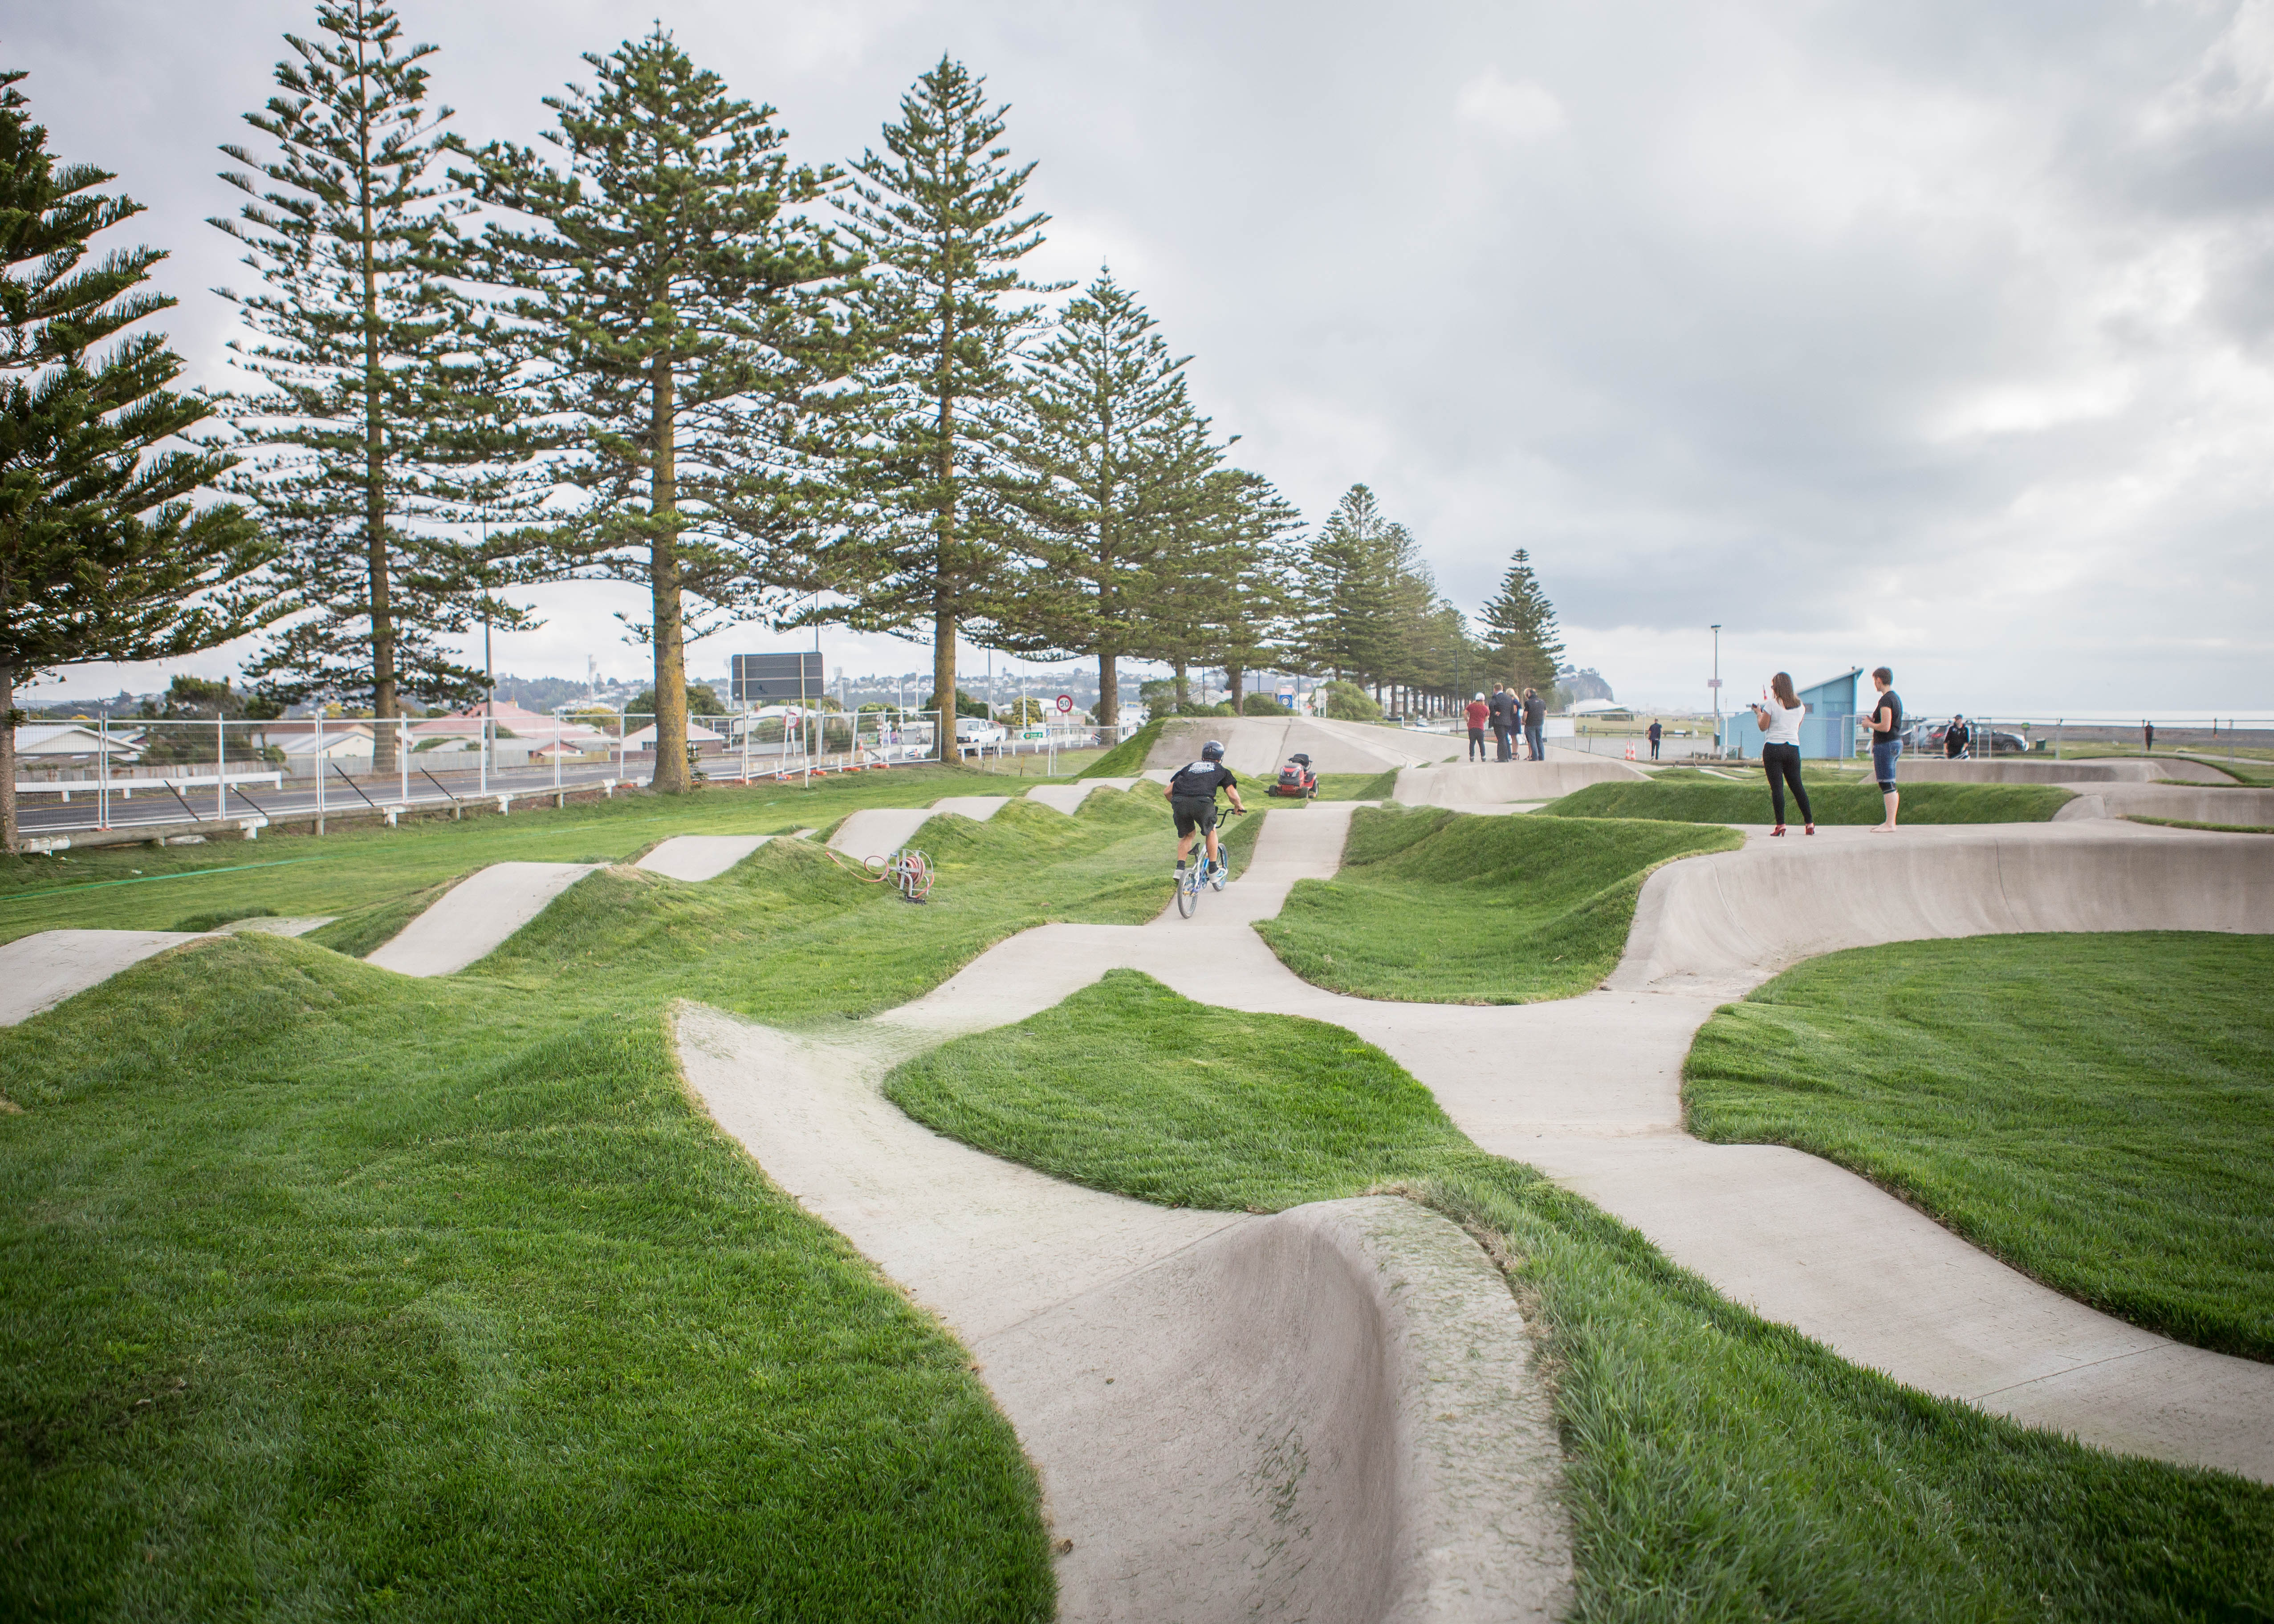 The completed pump track march 2015